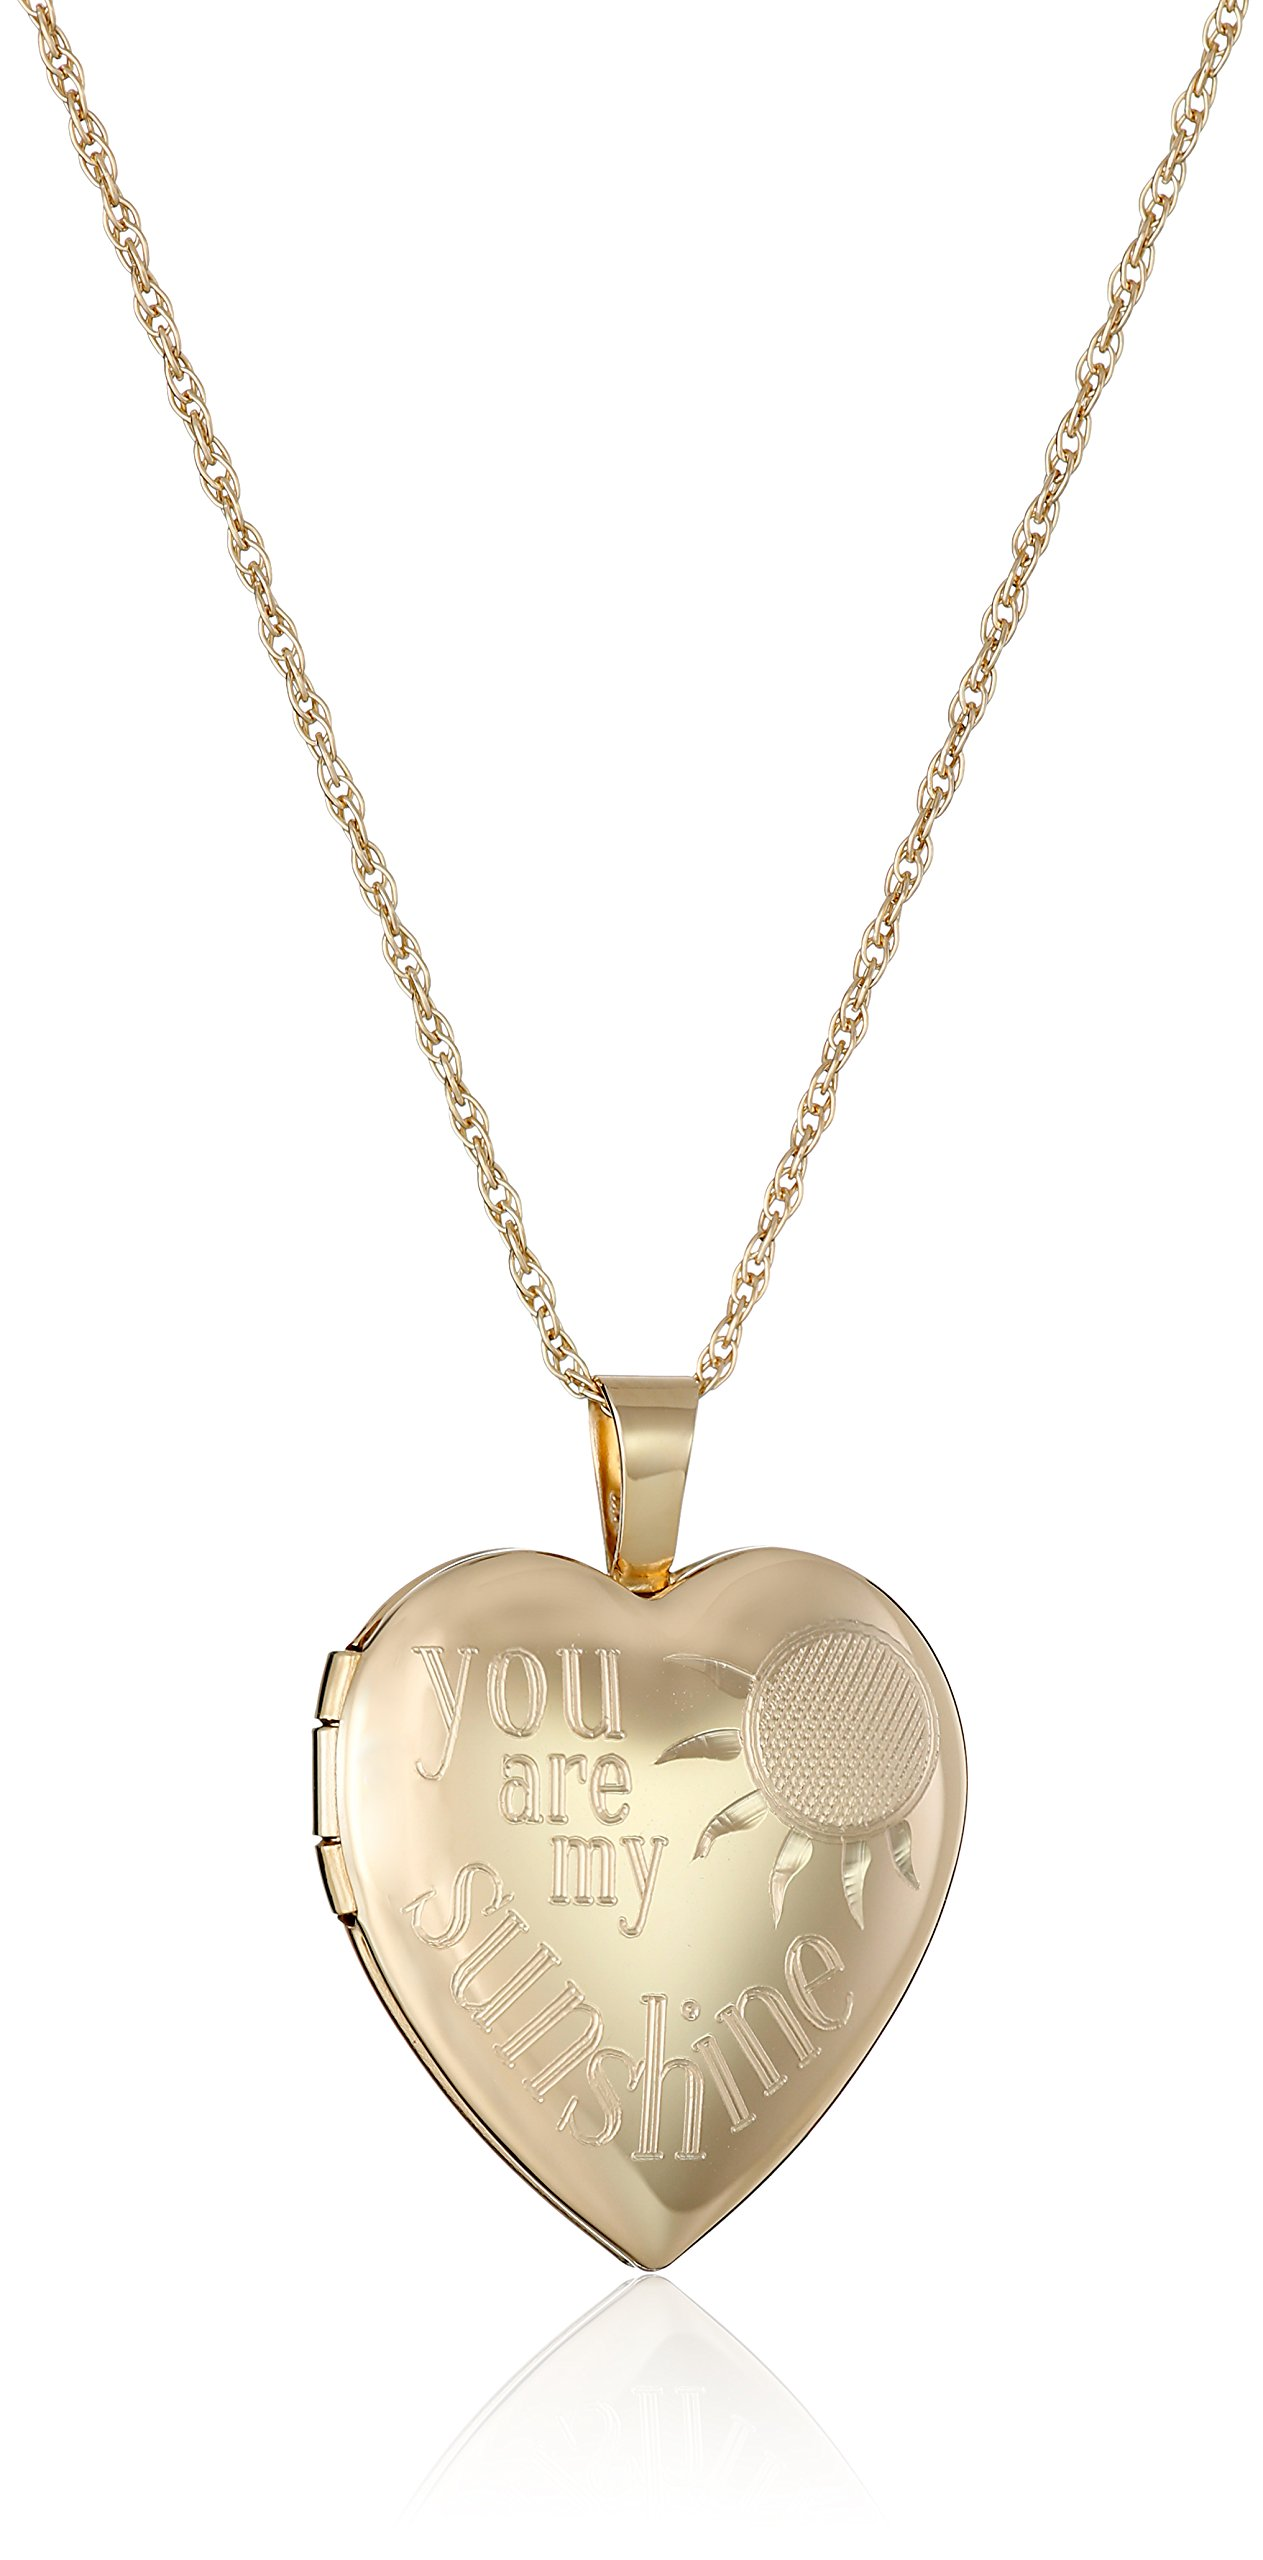 14k Gold-Filled ''You Are My Sunshine'' Heart Locket Necklace, 18'' by Amazon Collection